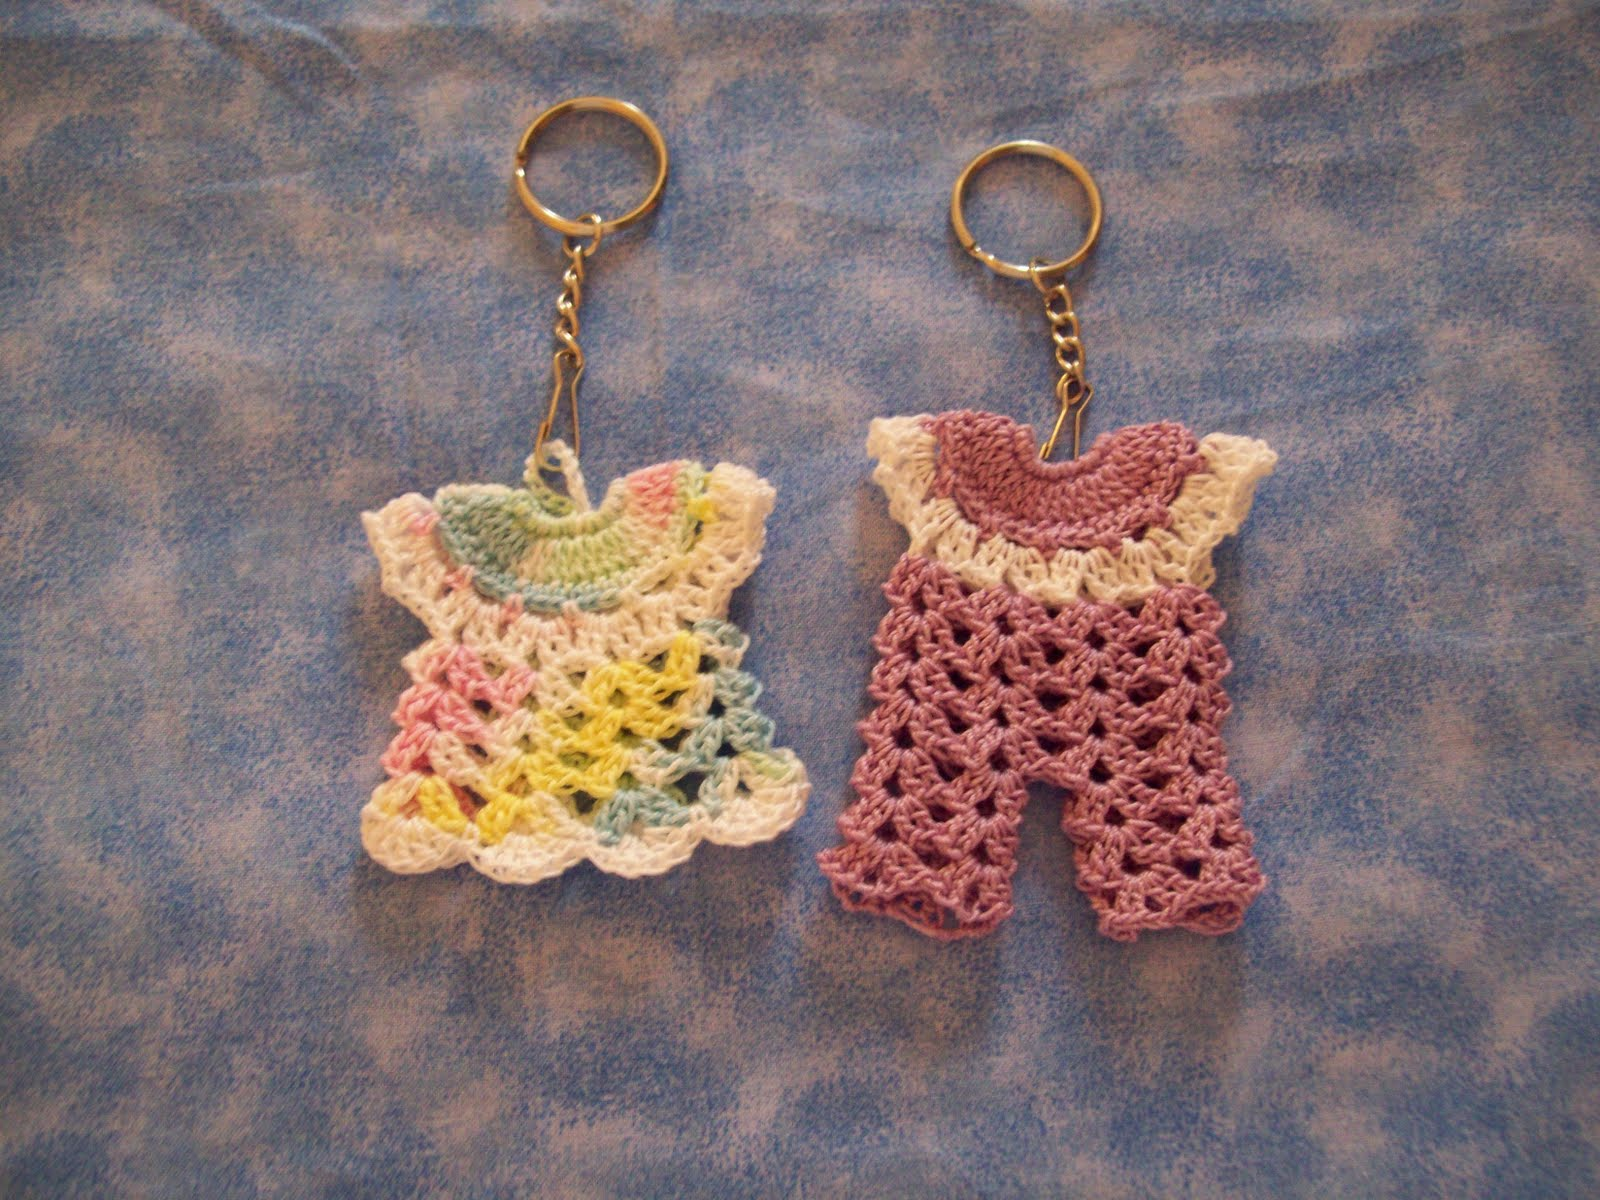 Crochet Patterns Keychain : Crochet Princess: Keychains and Crochet